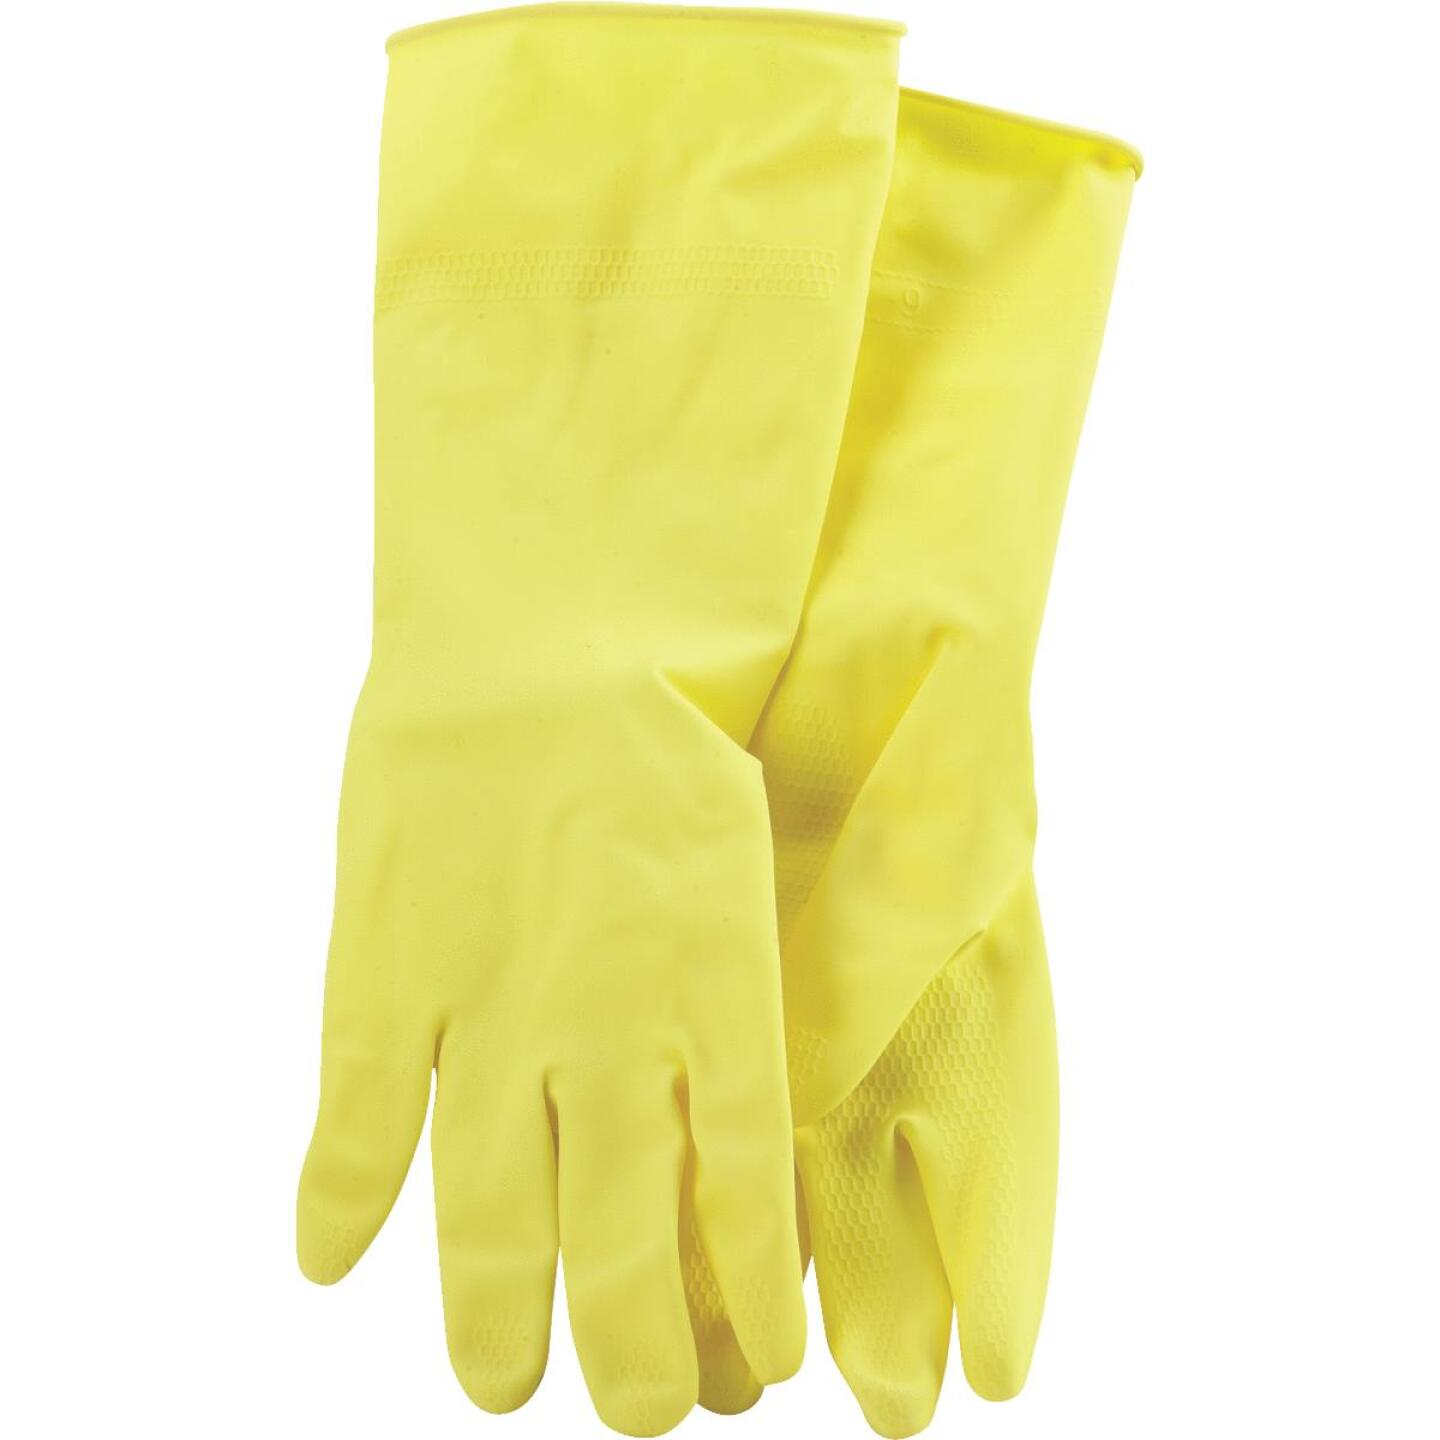 Do it Large Latex Rubber Glove Image 1